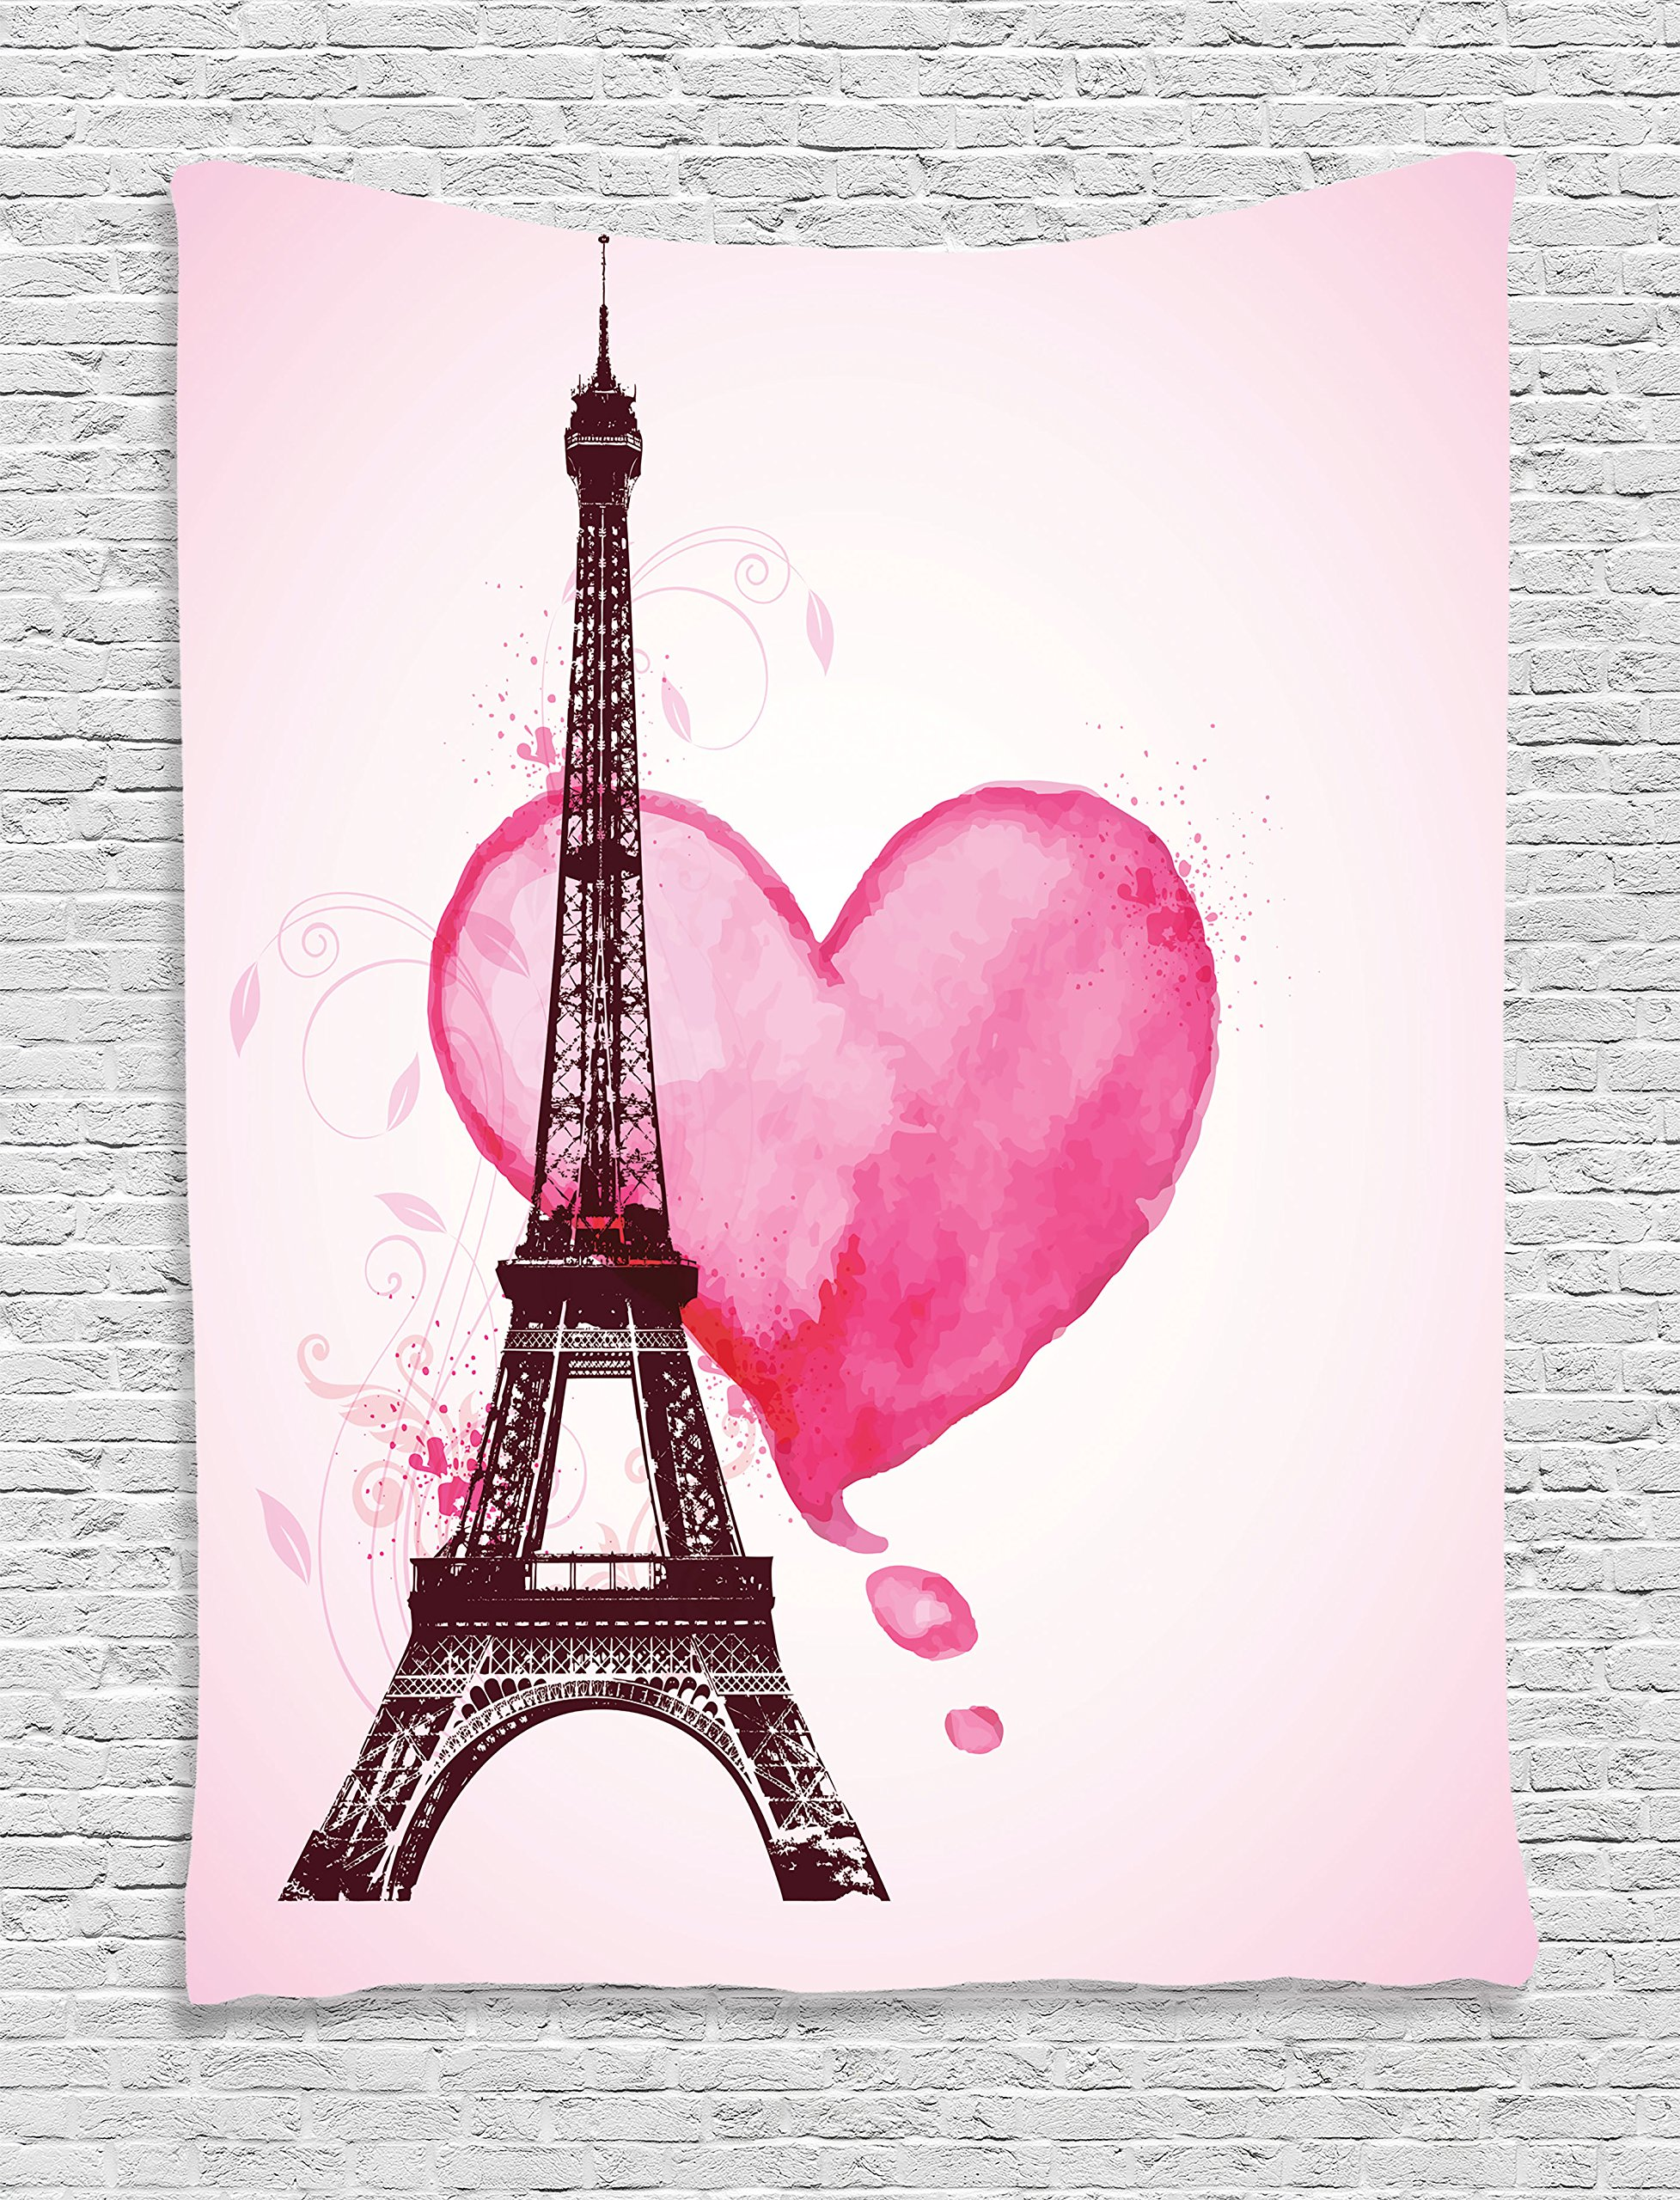 Ambesonne Eiffel Tower Decor Tapestry Wall Hanging by, Eiffel Romantic Valentine Love Watercolor Themed Heart Leaf Silhouette Print, Bedroom Living Room Dorm Decor, 60 W x 80 L Inches, Plum Fuchsia